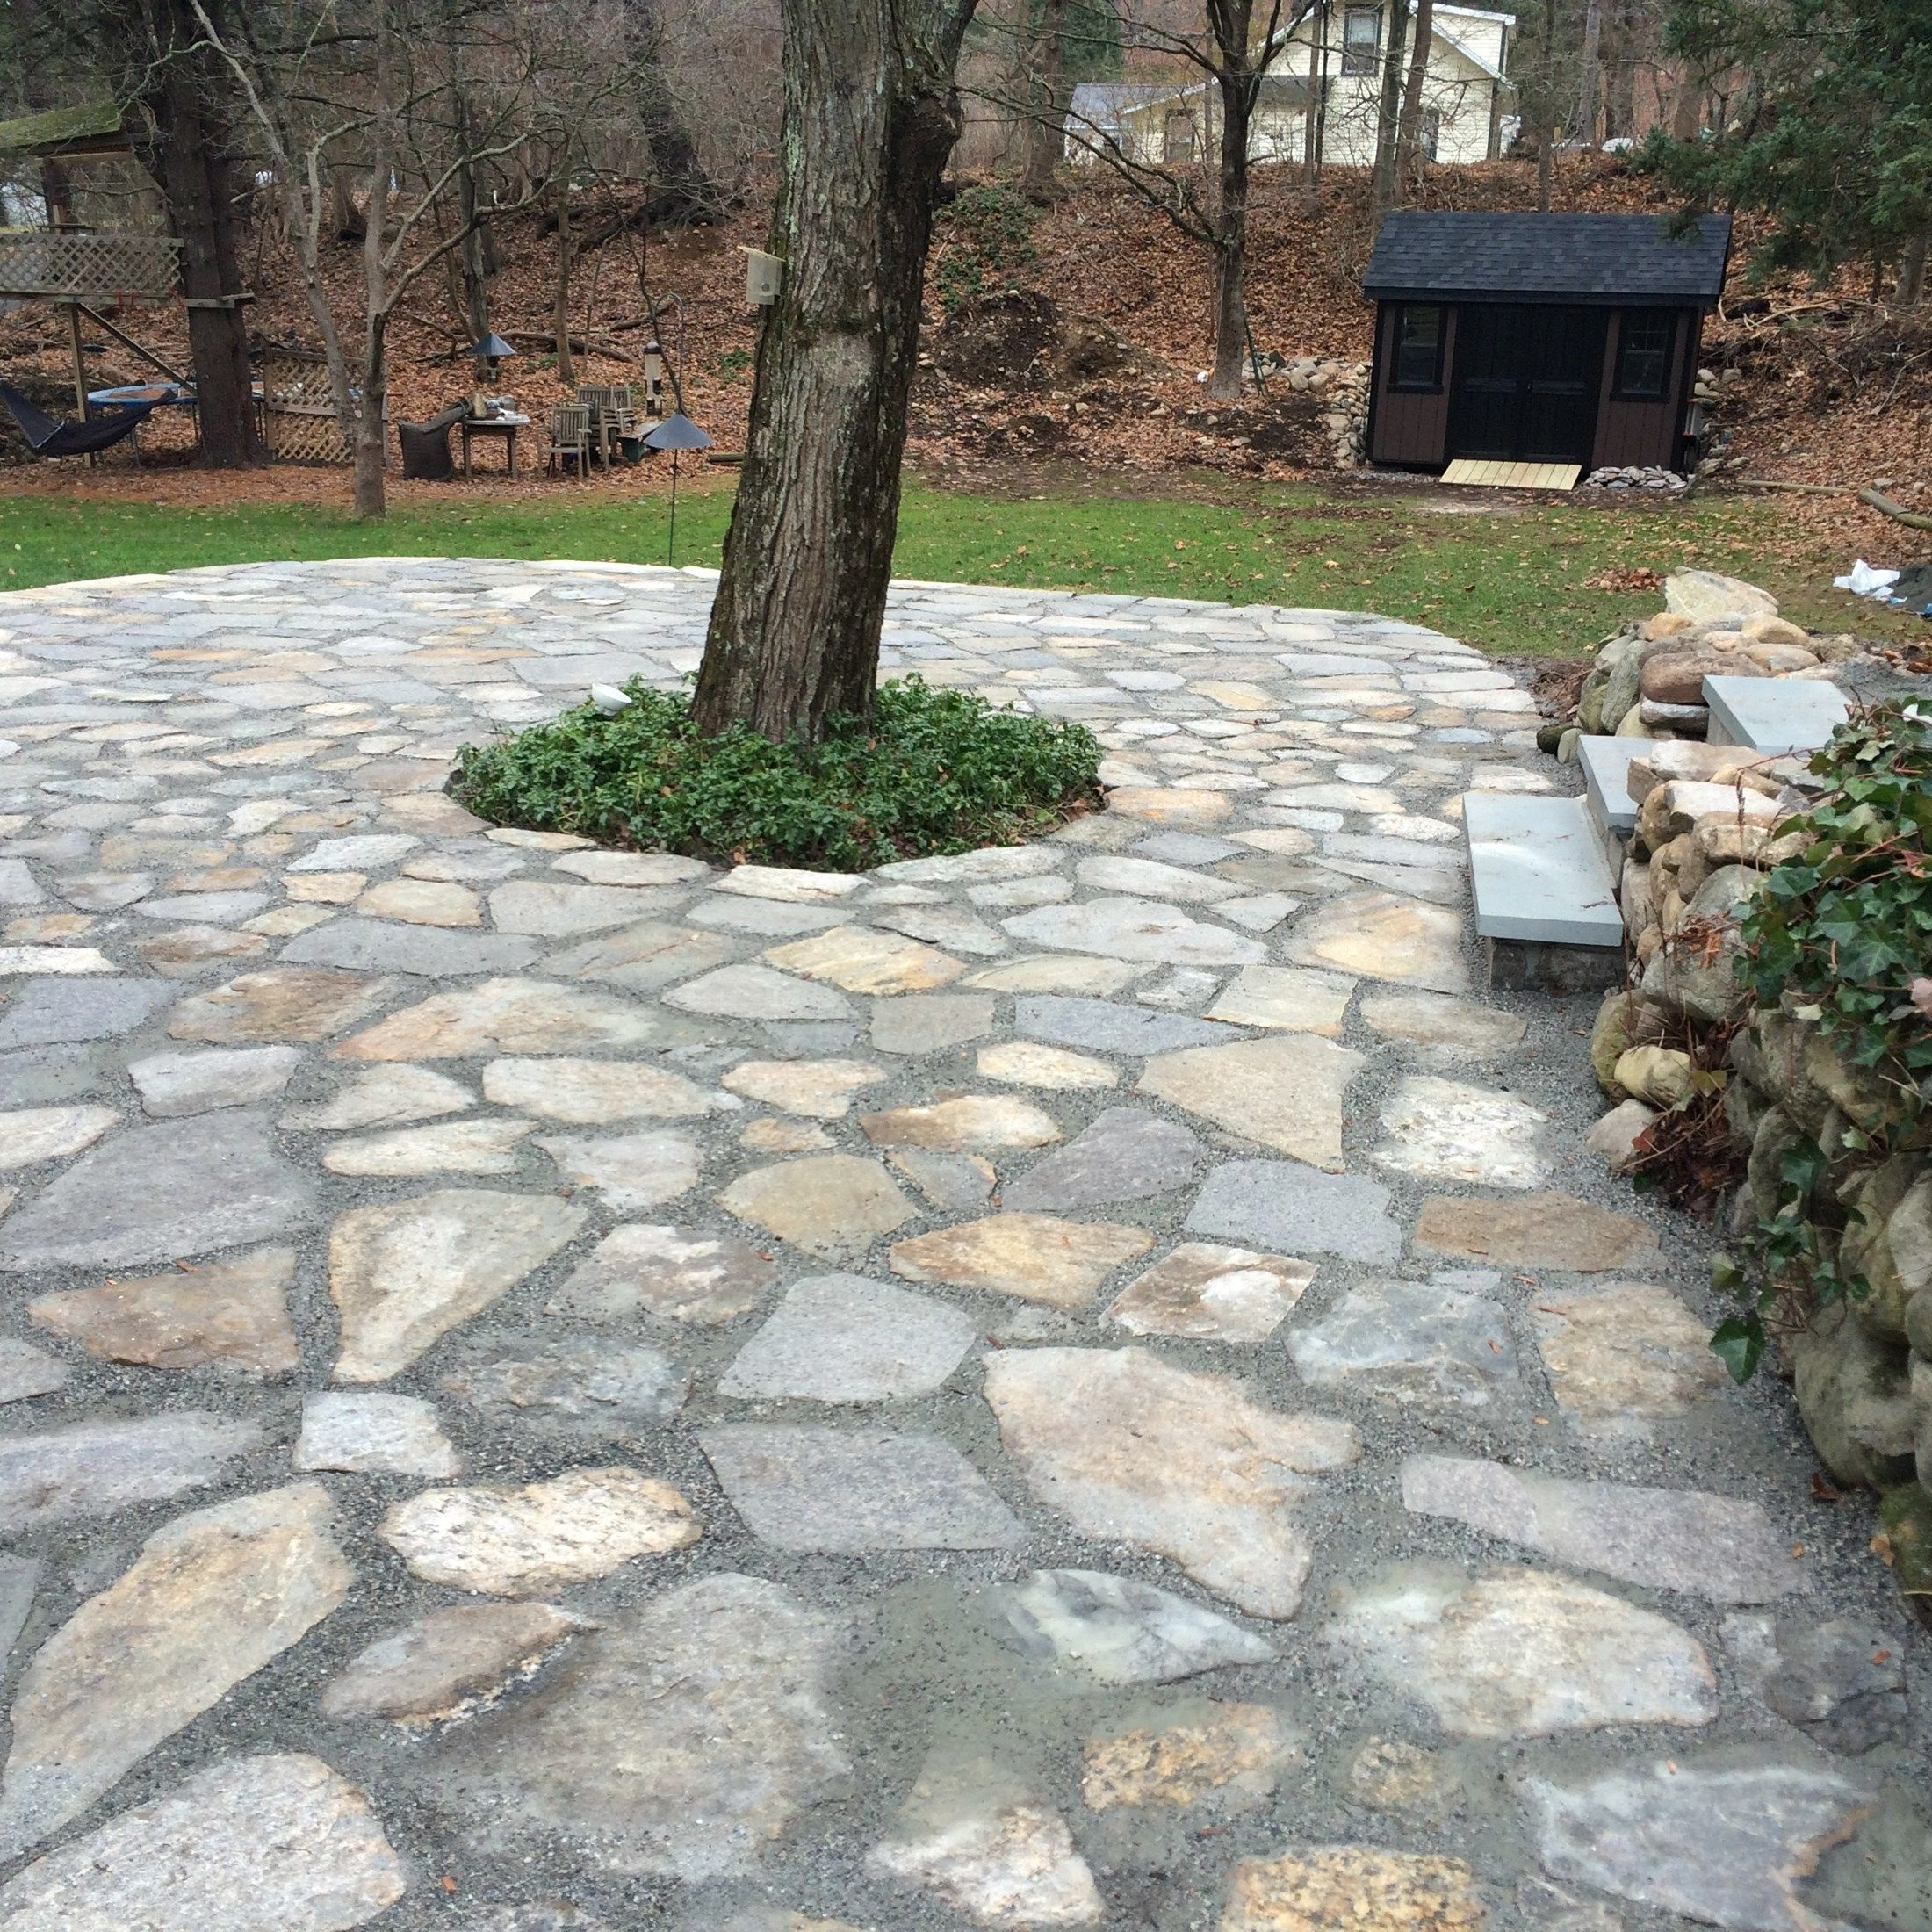 Re-pointed Patio Space in Wilton - Picture 3785